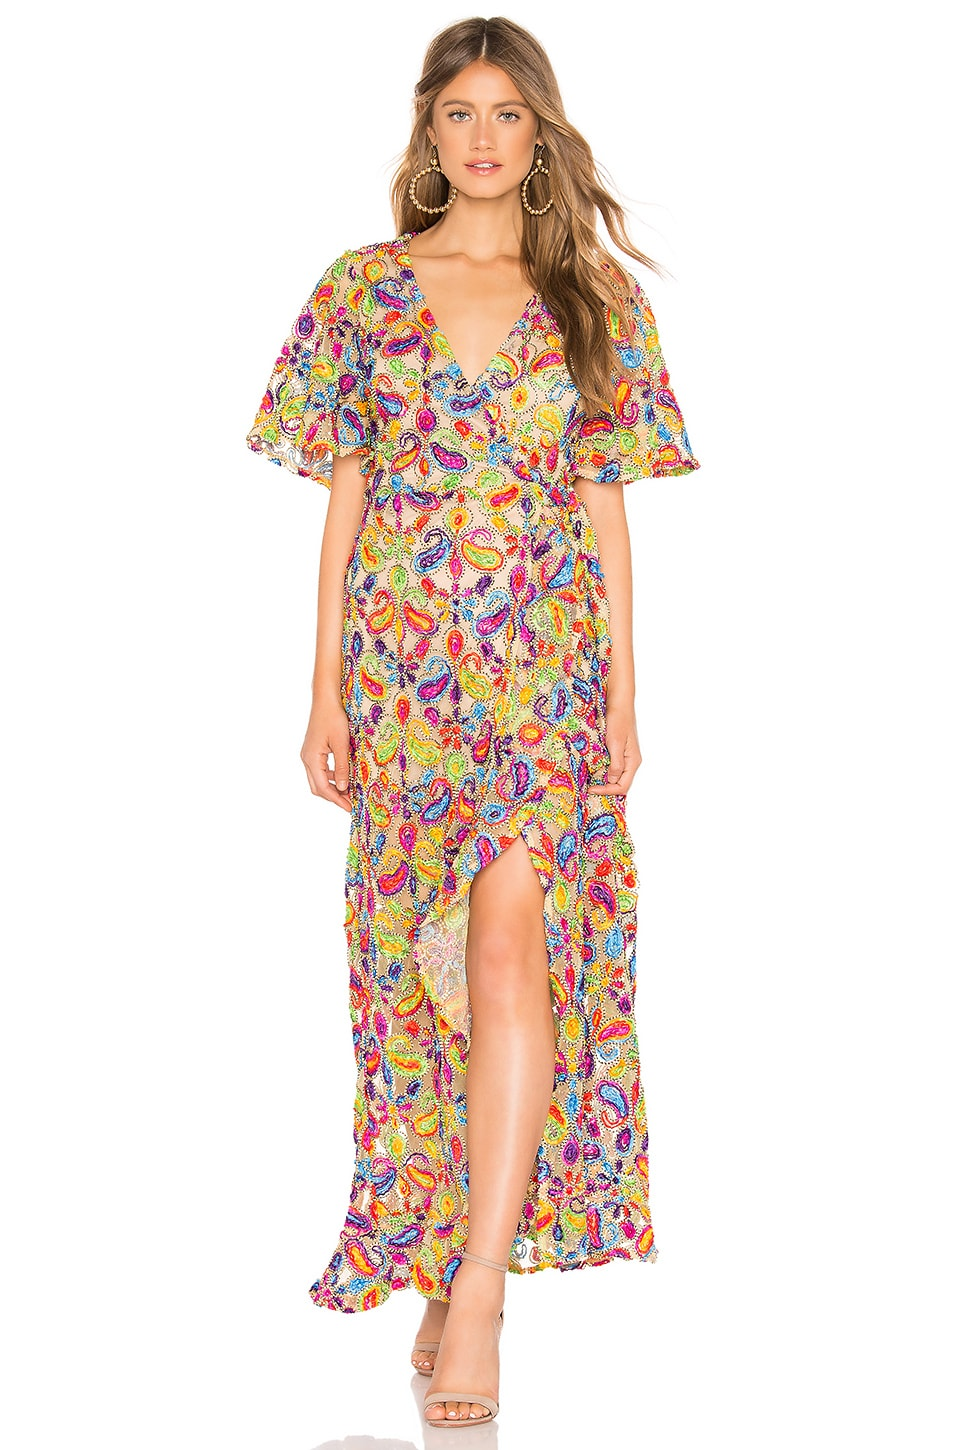 Tularosa Huntley Dress in Multi